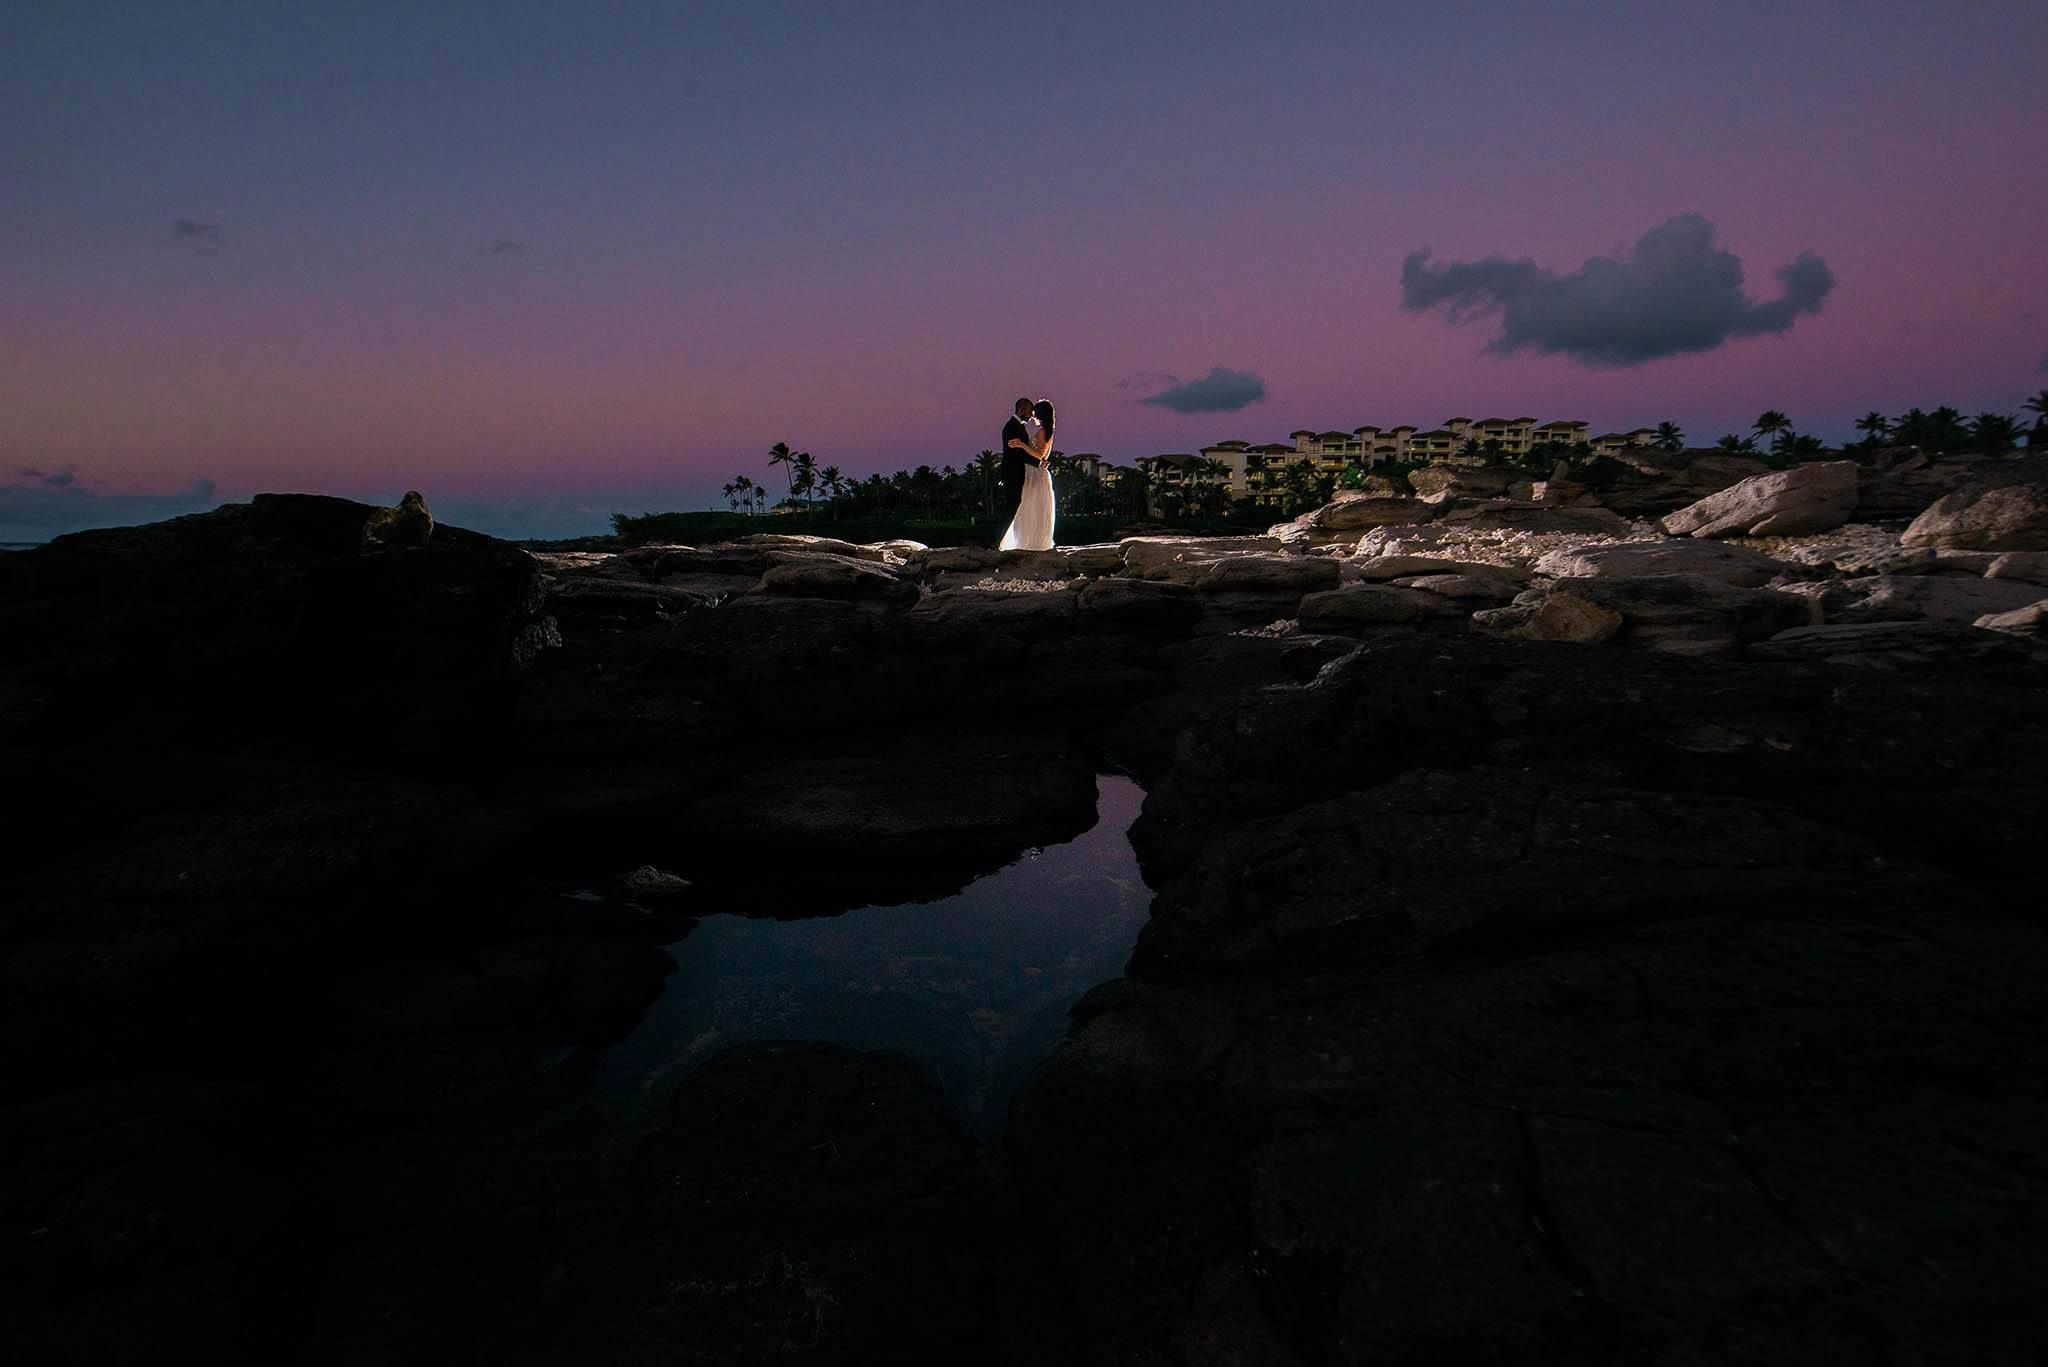 maui wedding at sunset at merrimans kapalua